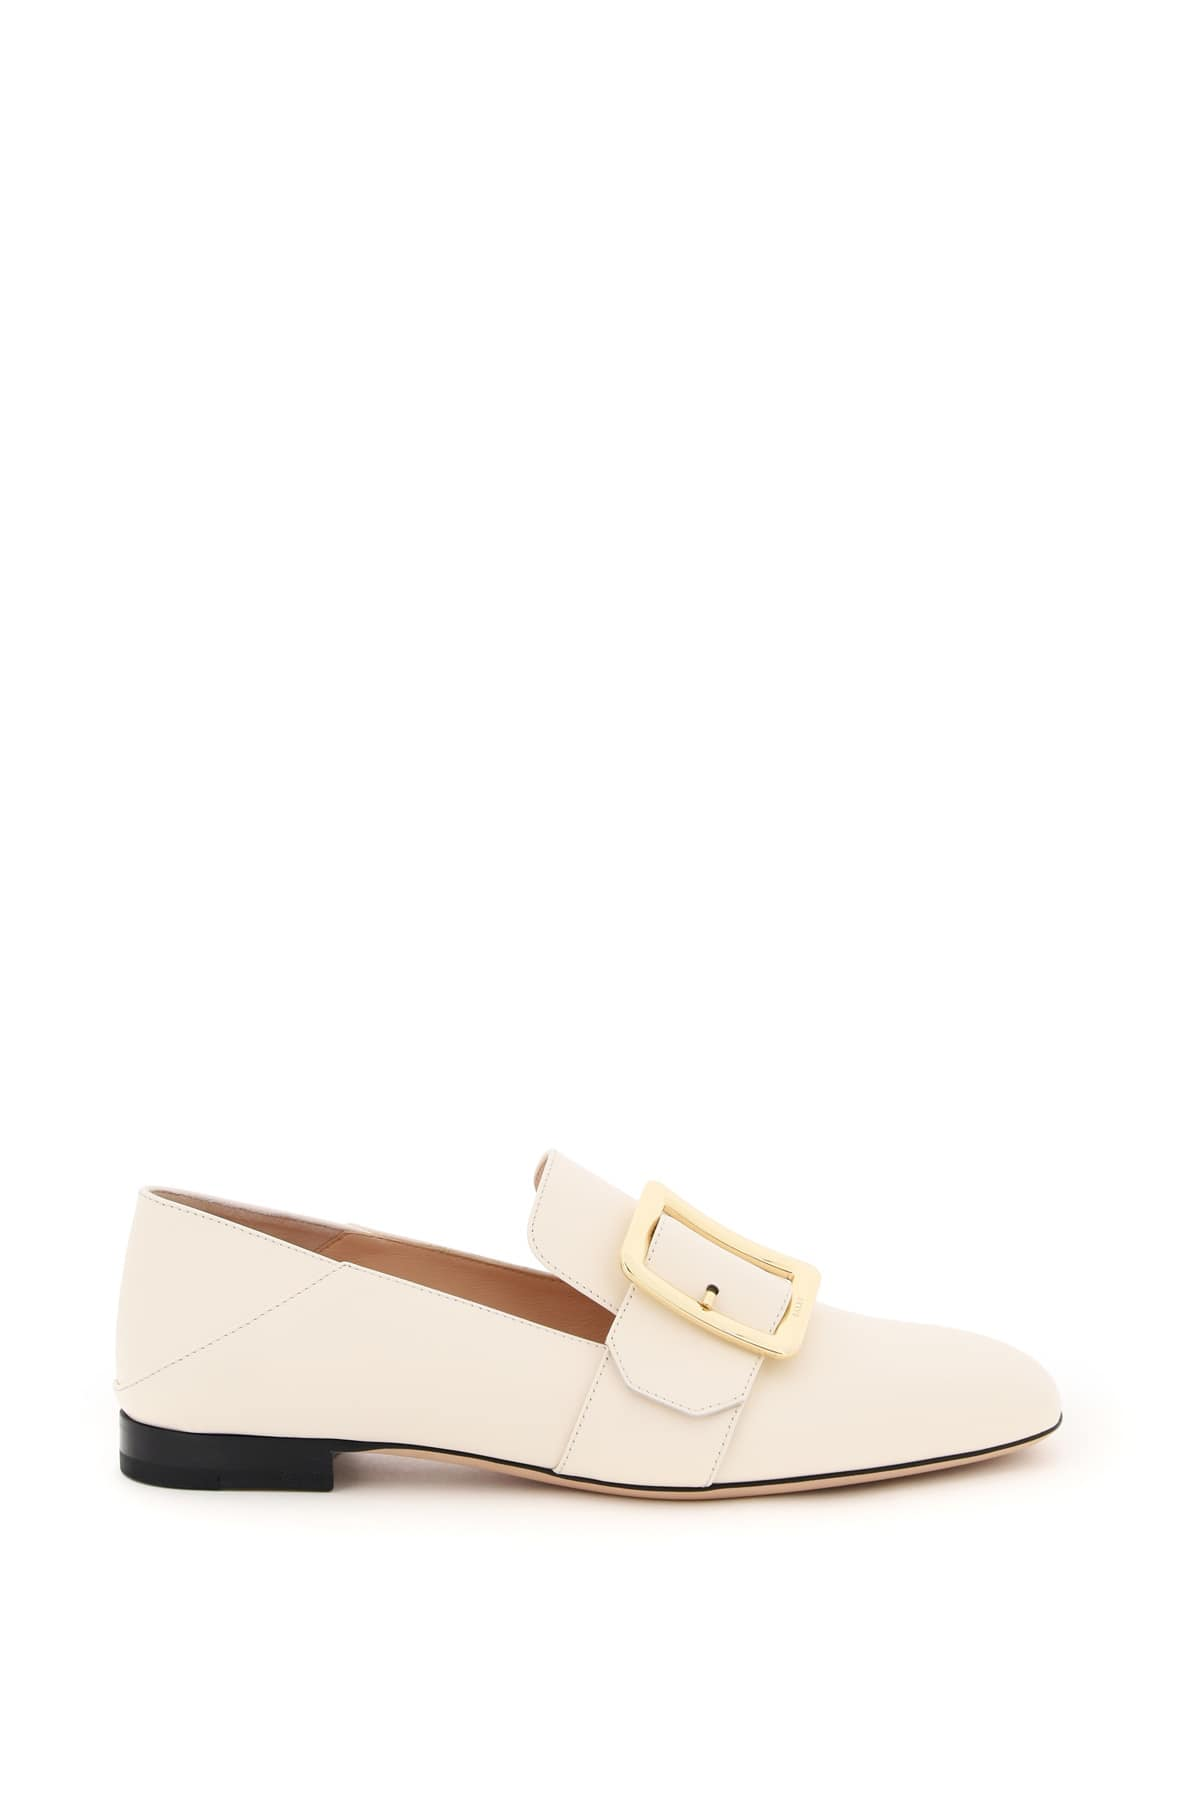 BALLY JANELLE LEATHER LOAFERS 35 White Leather